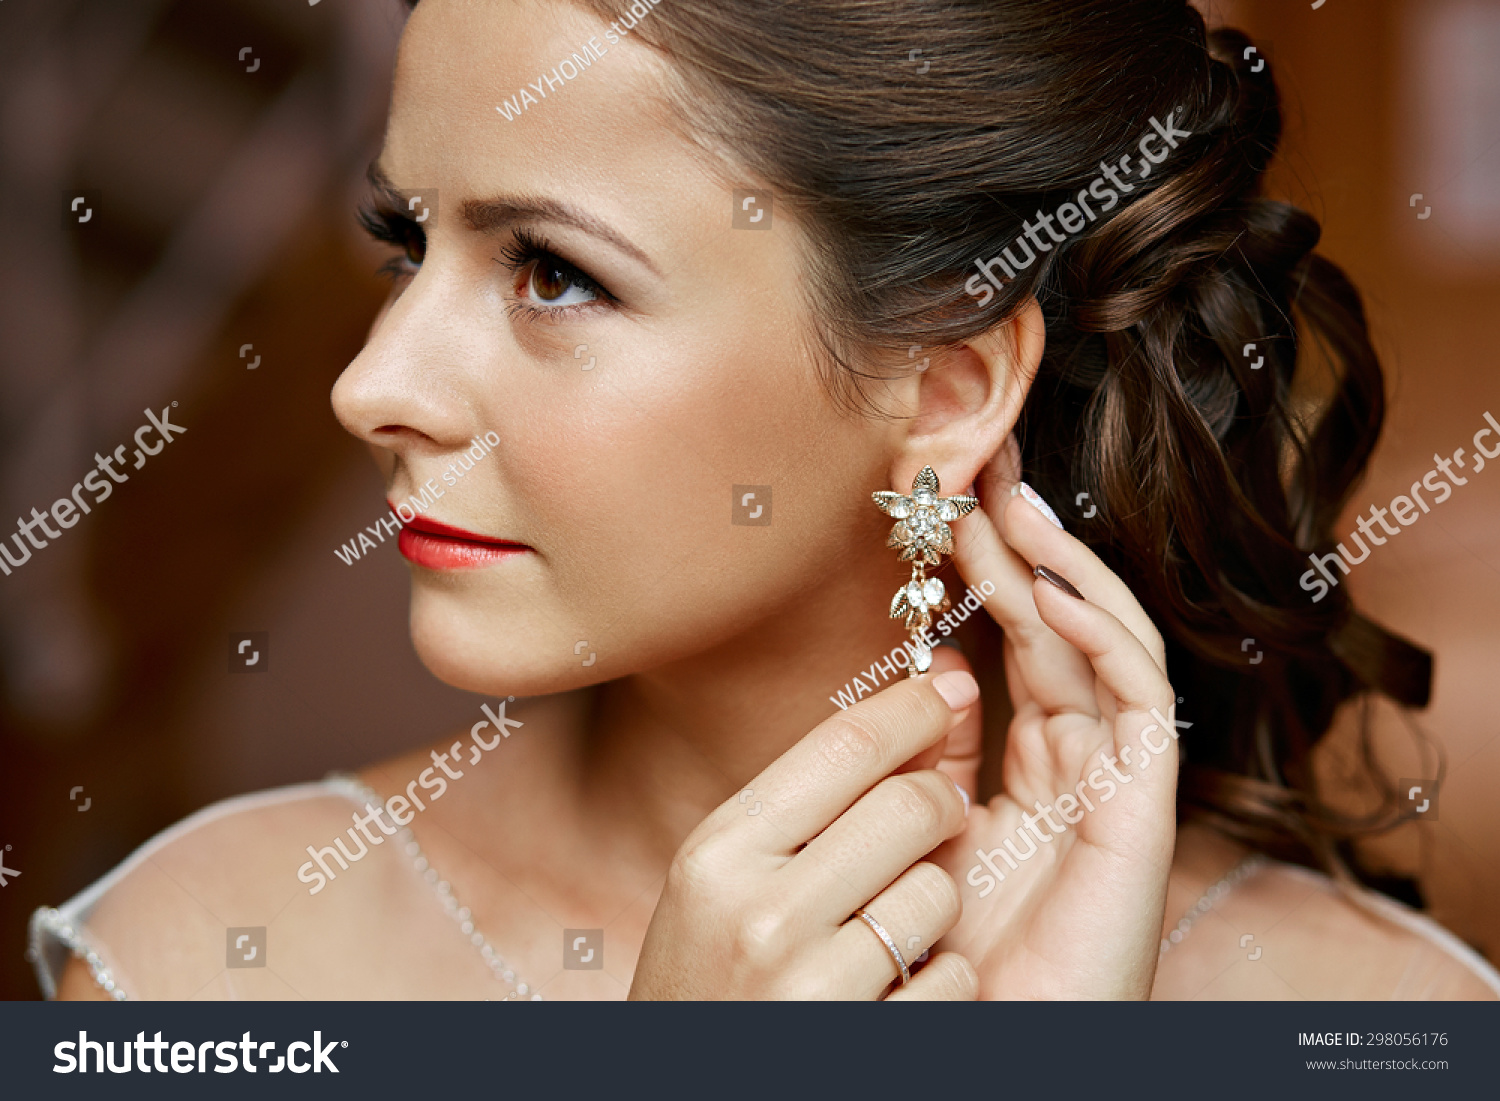 and women woman floral earrings pin jewel